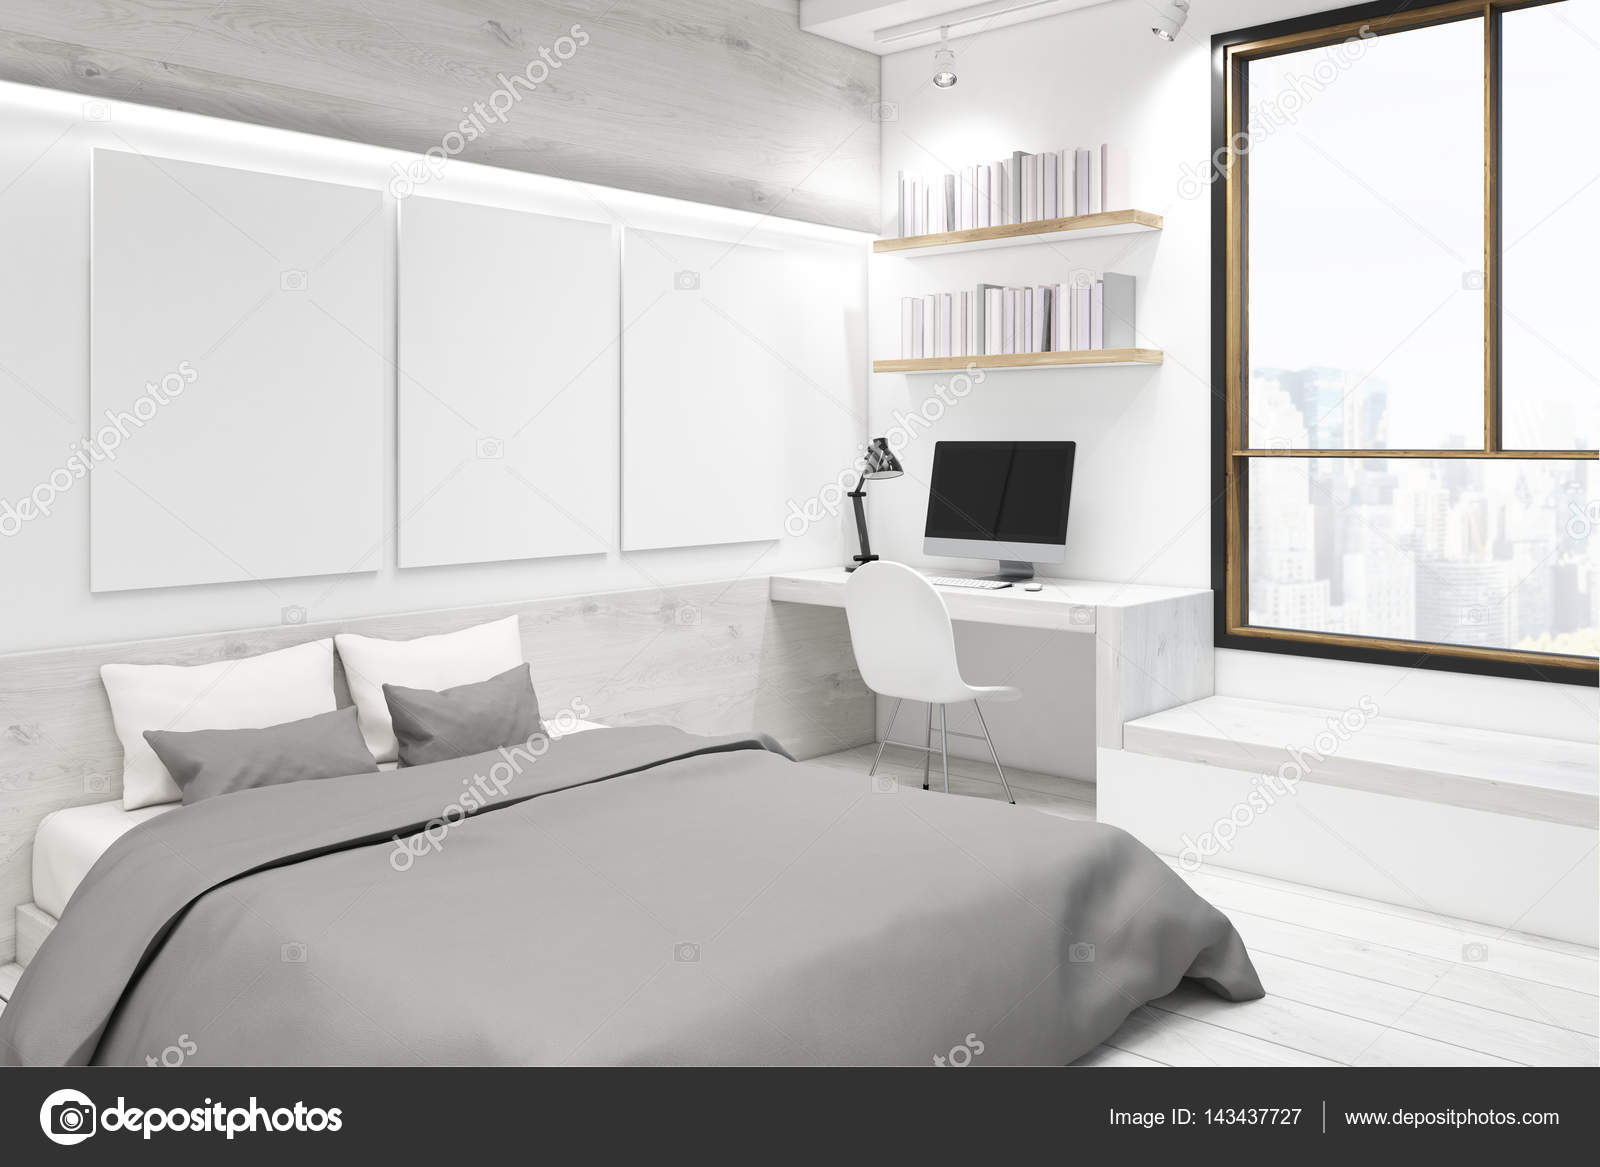 chambre coucher blanche avec galerie photo coin photo